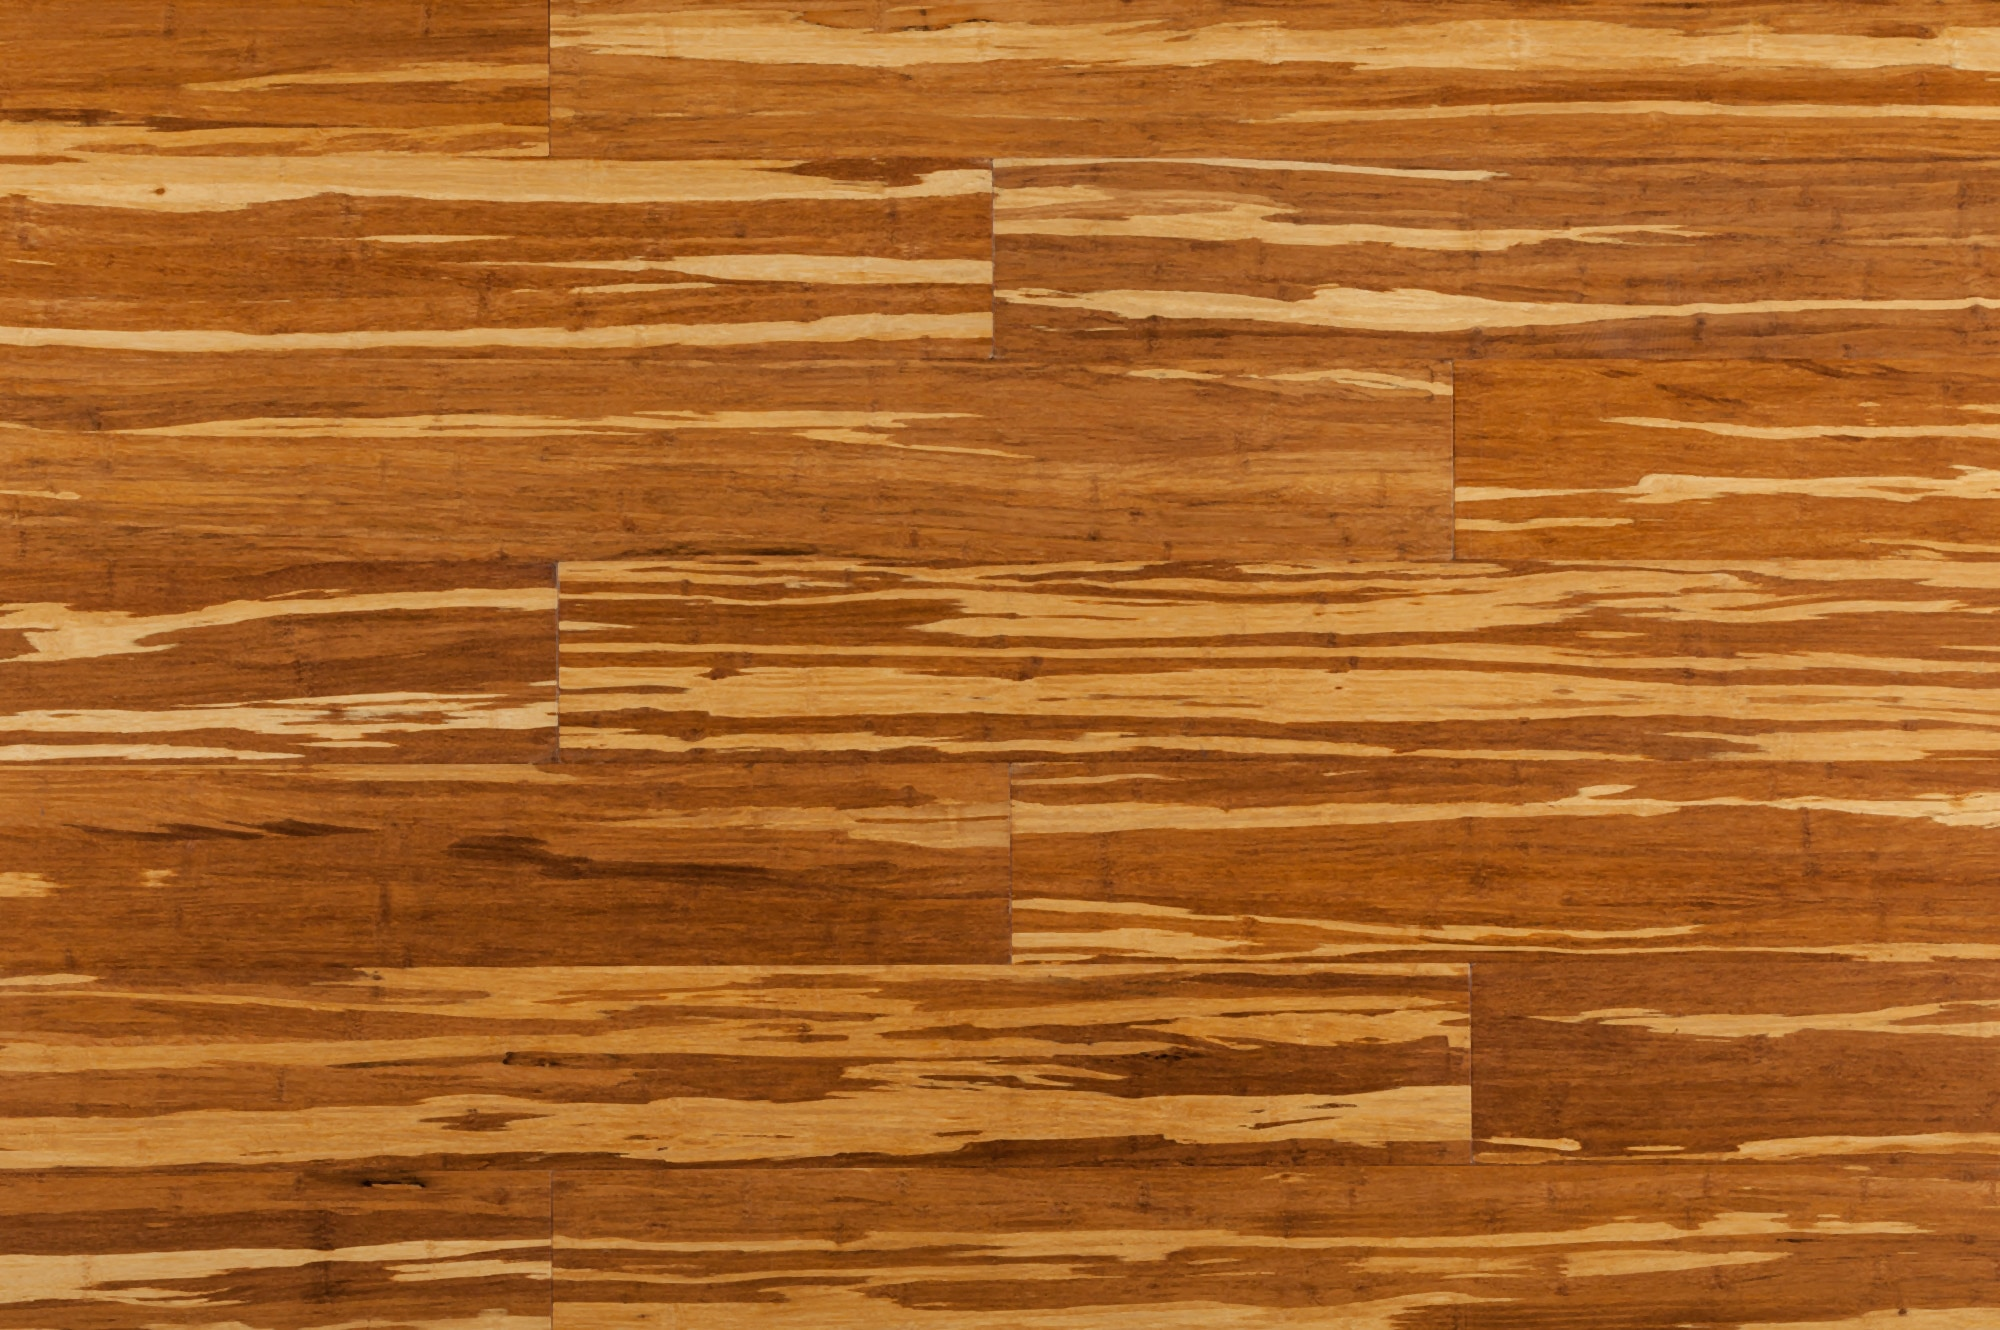 tiger bamboo flooring pictures